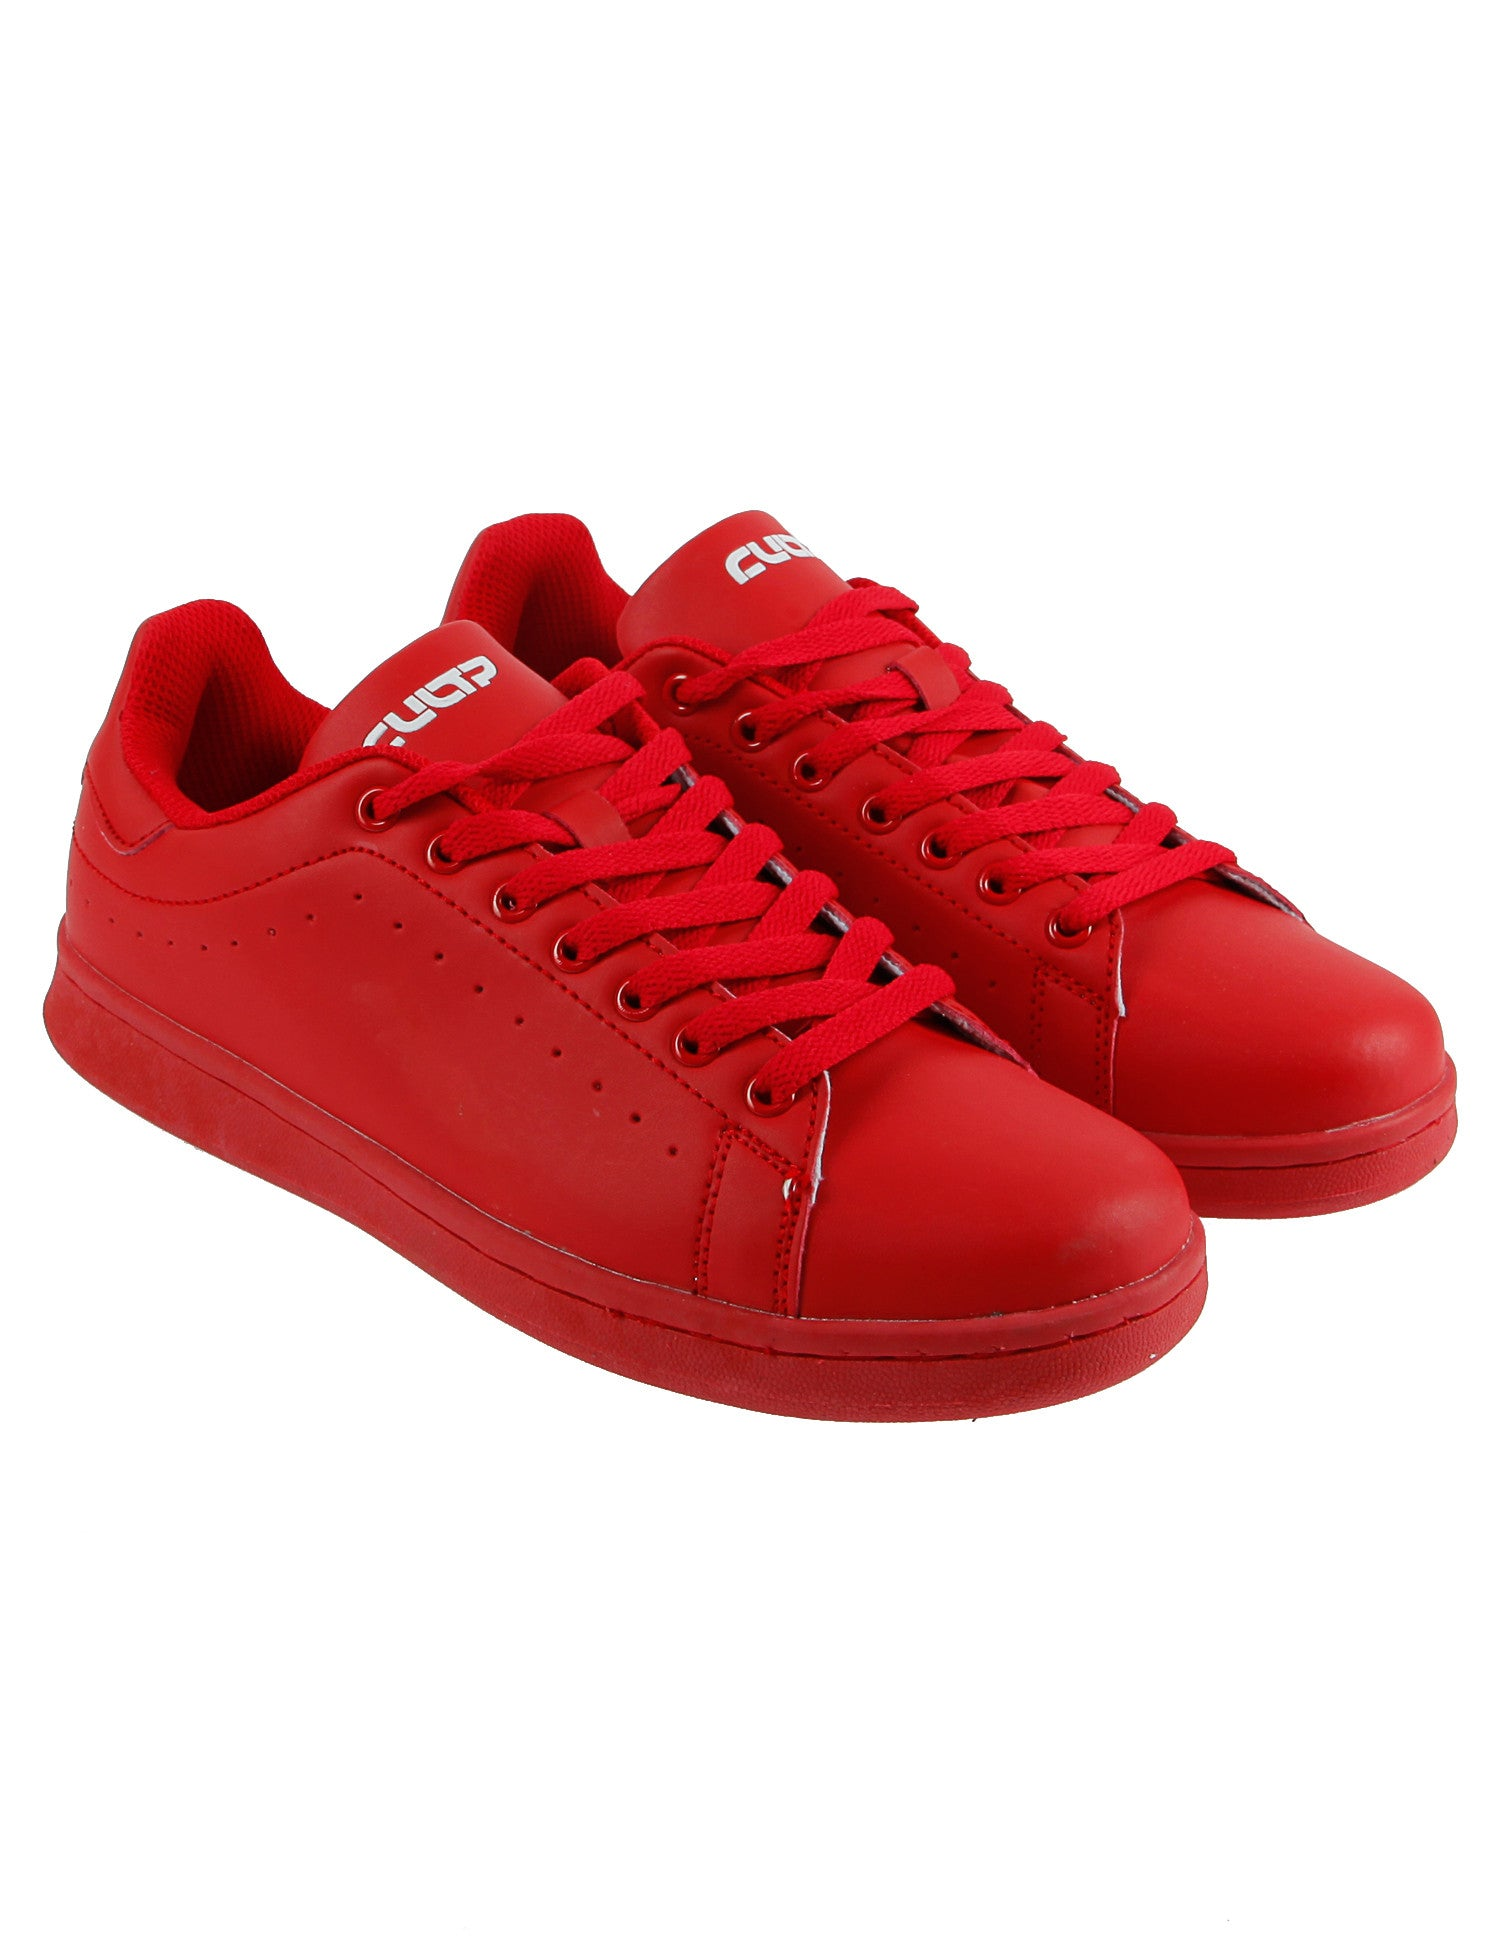 Cultz 851127M Shoes  Red